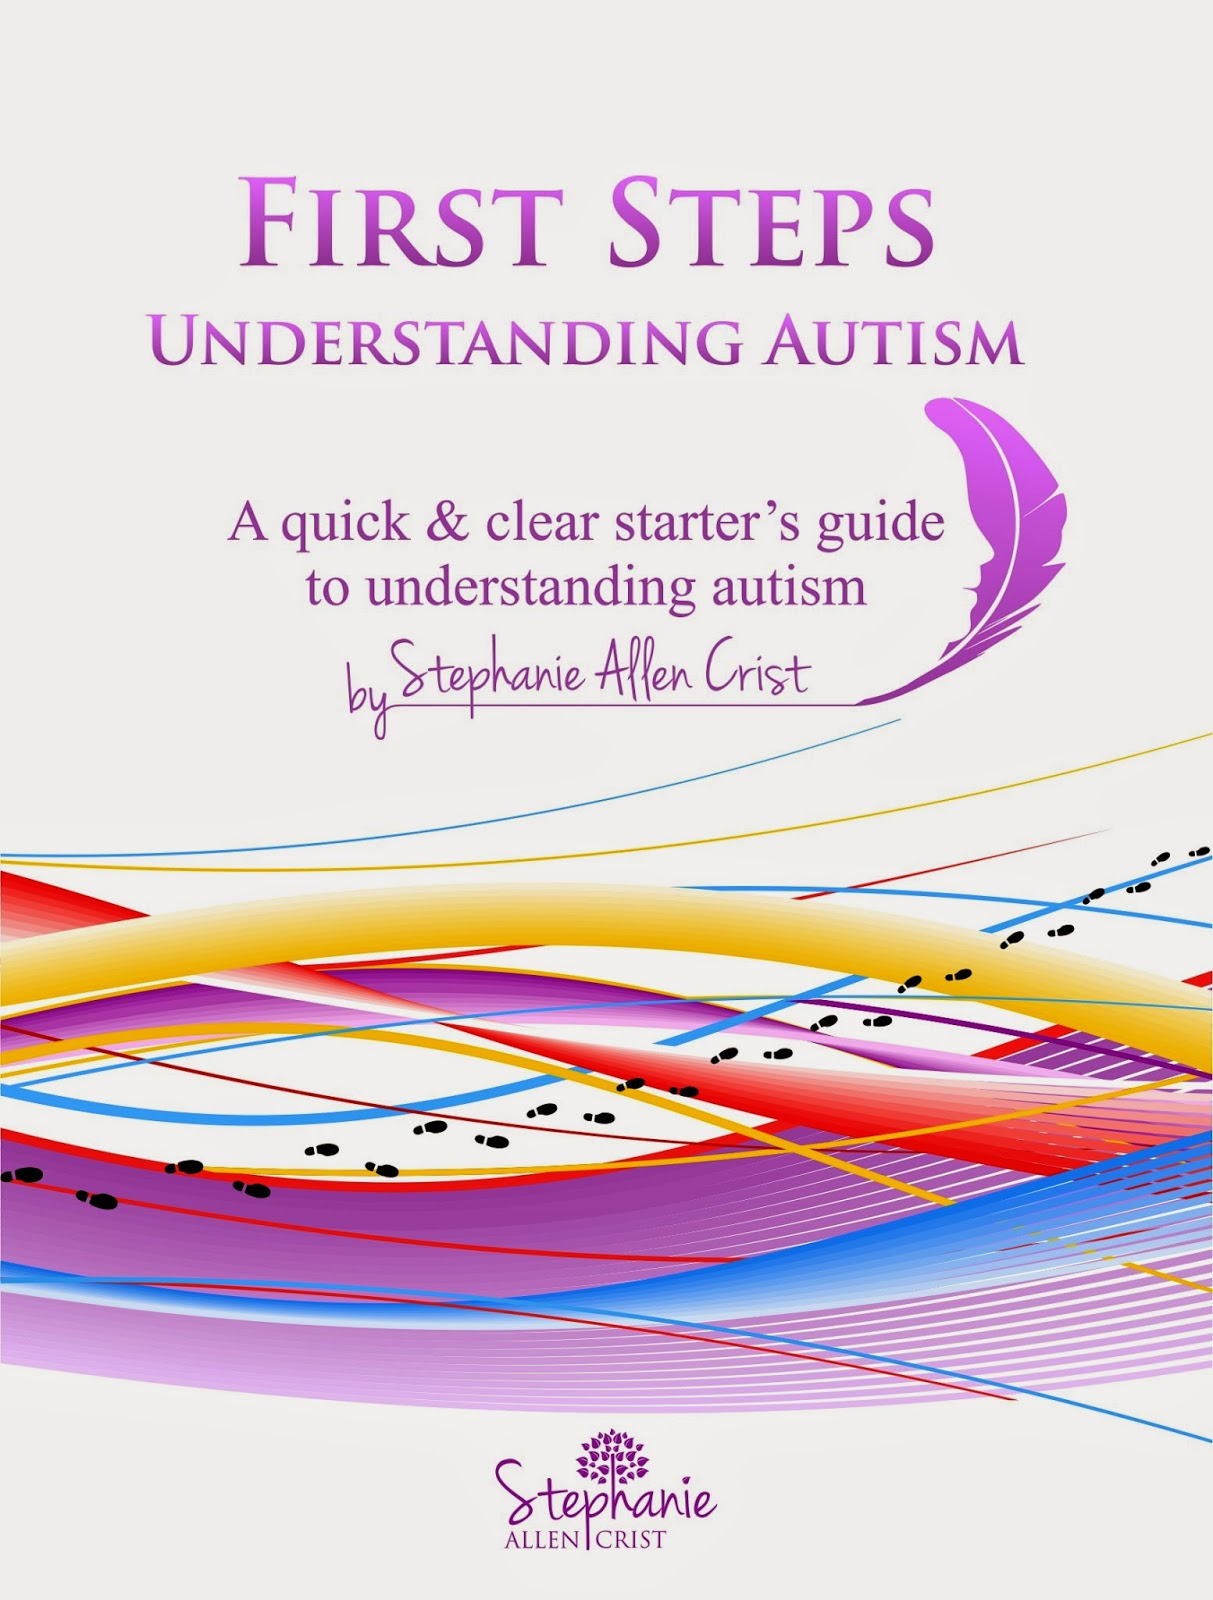 First Steps: Understanding Autism